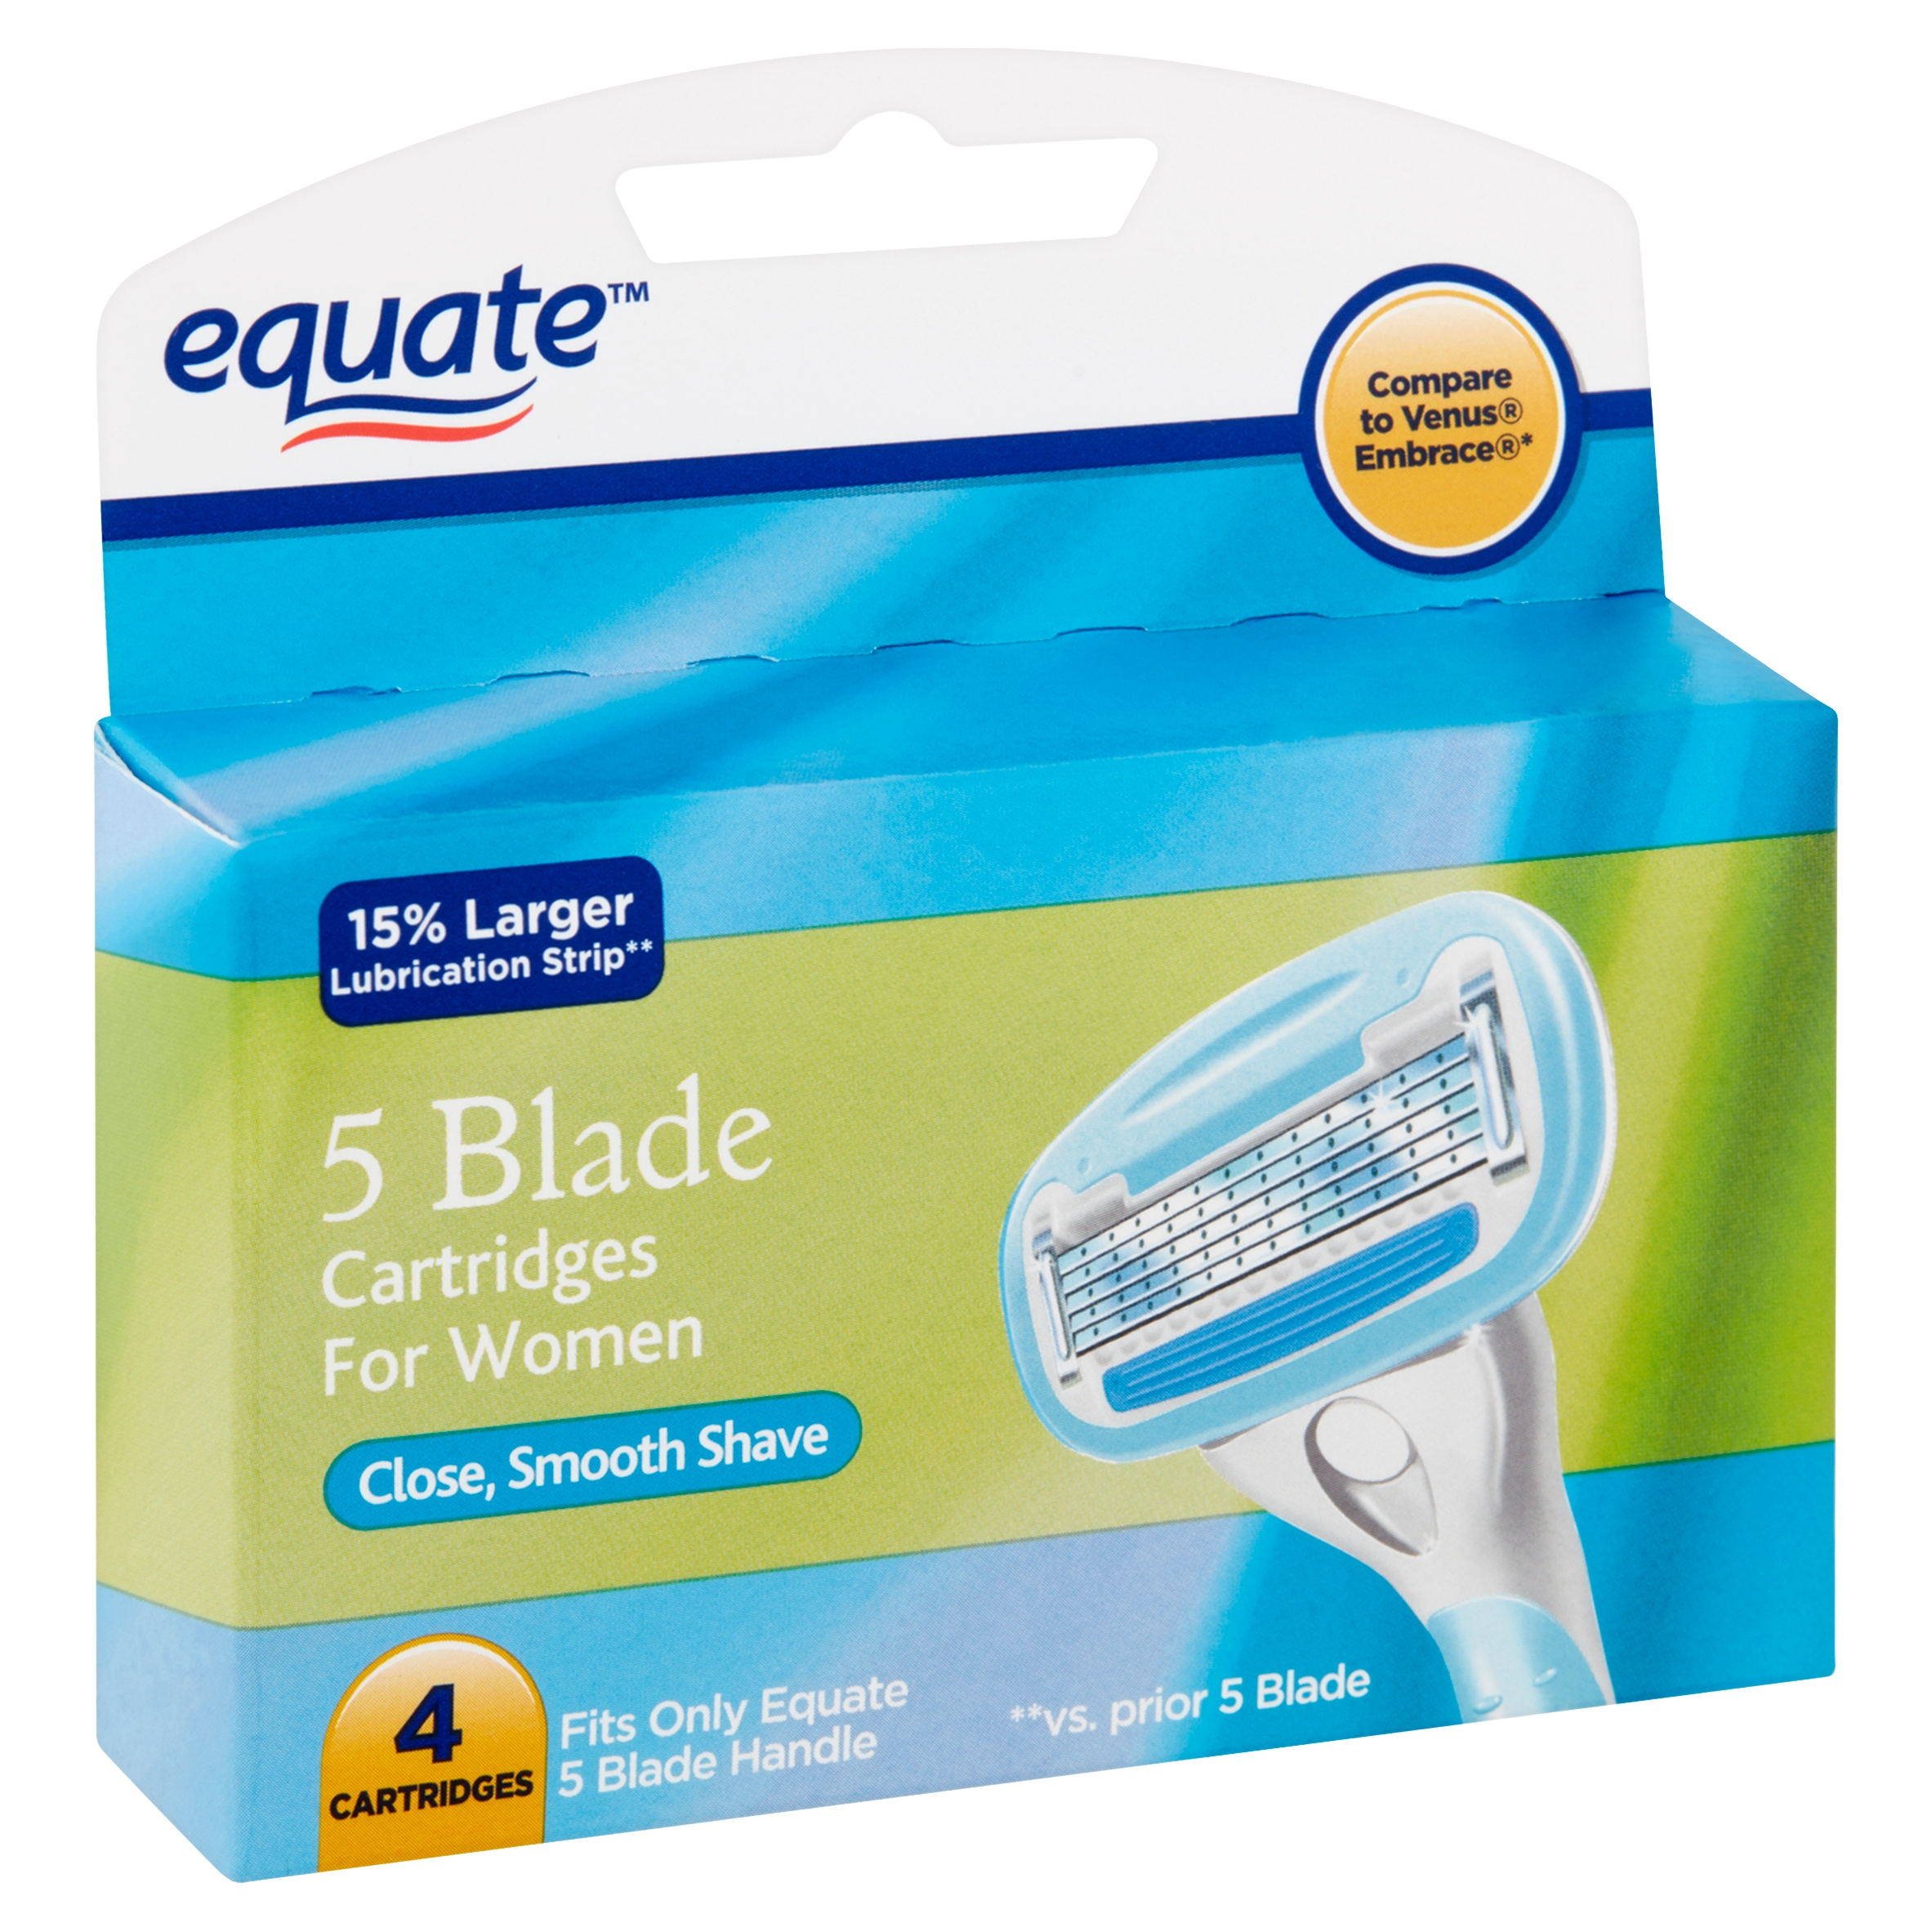 Equate 5 Blade Cartridges for Women, 4 count